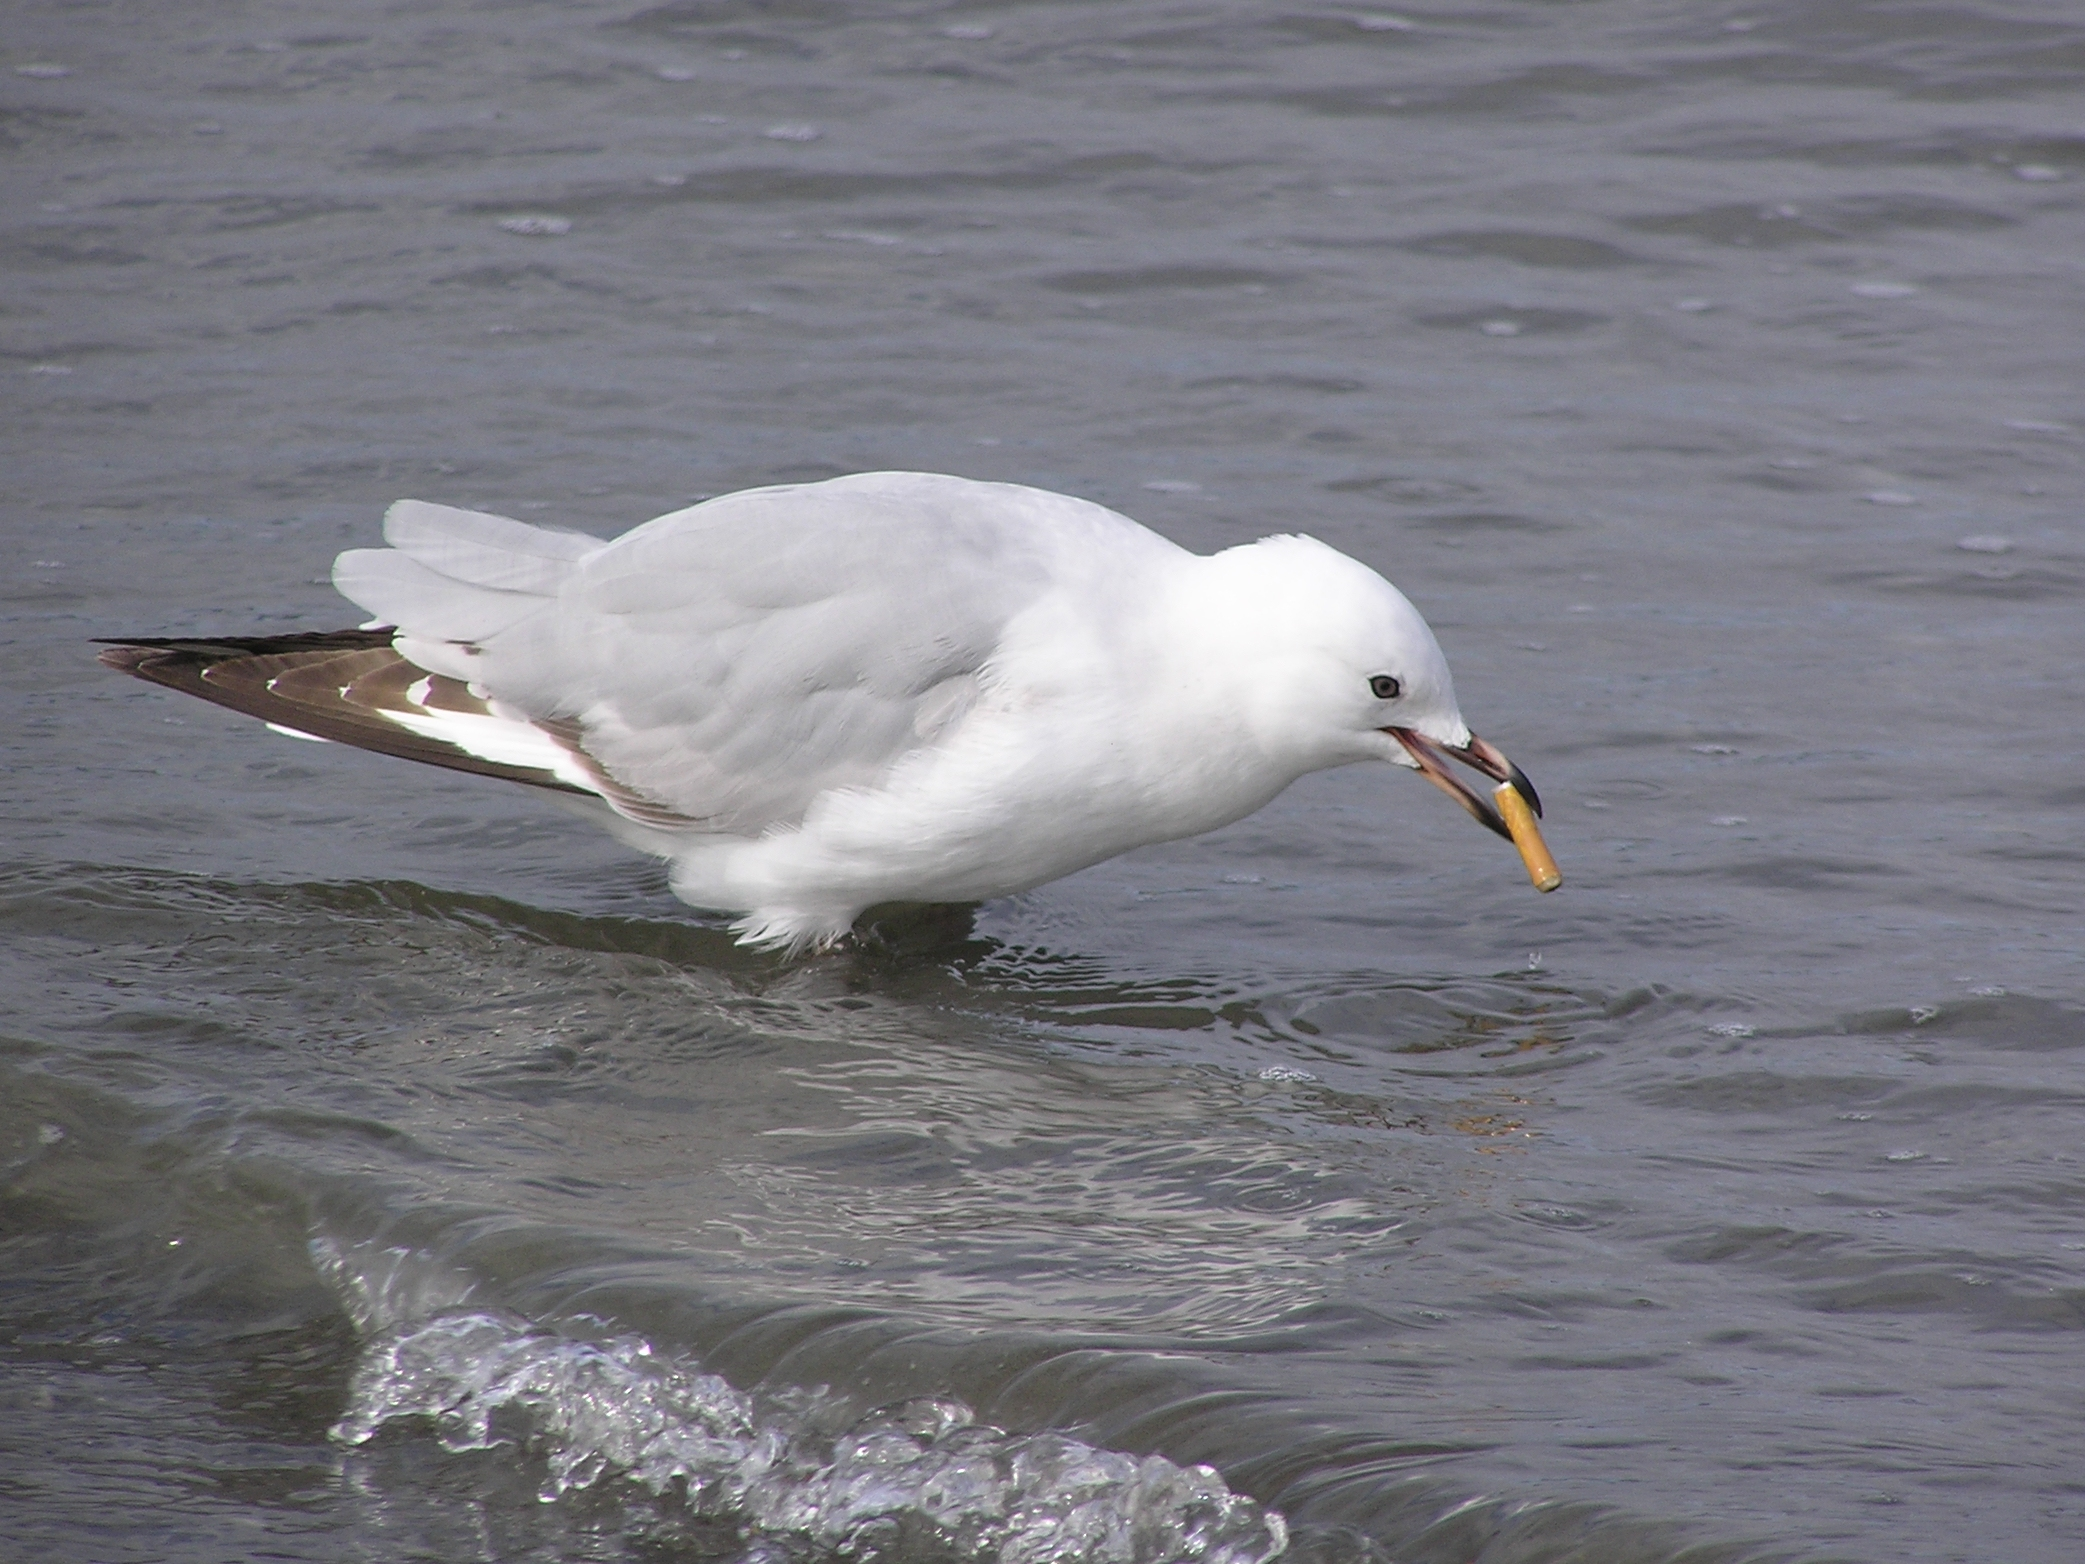 Red billed gull with cigarette butt